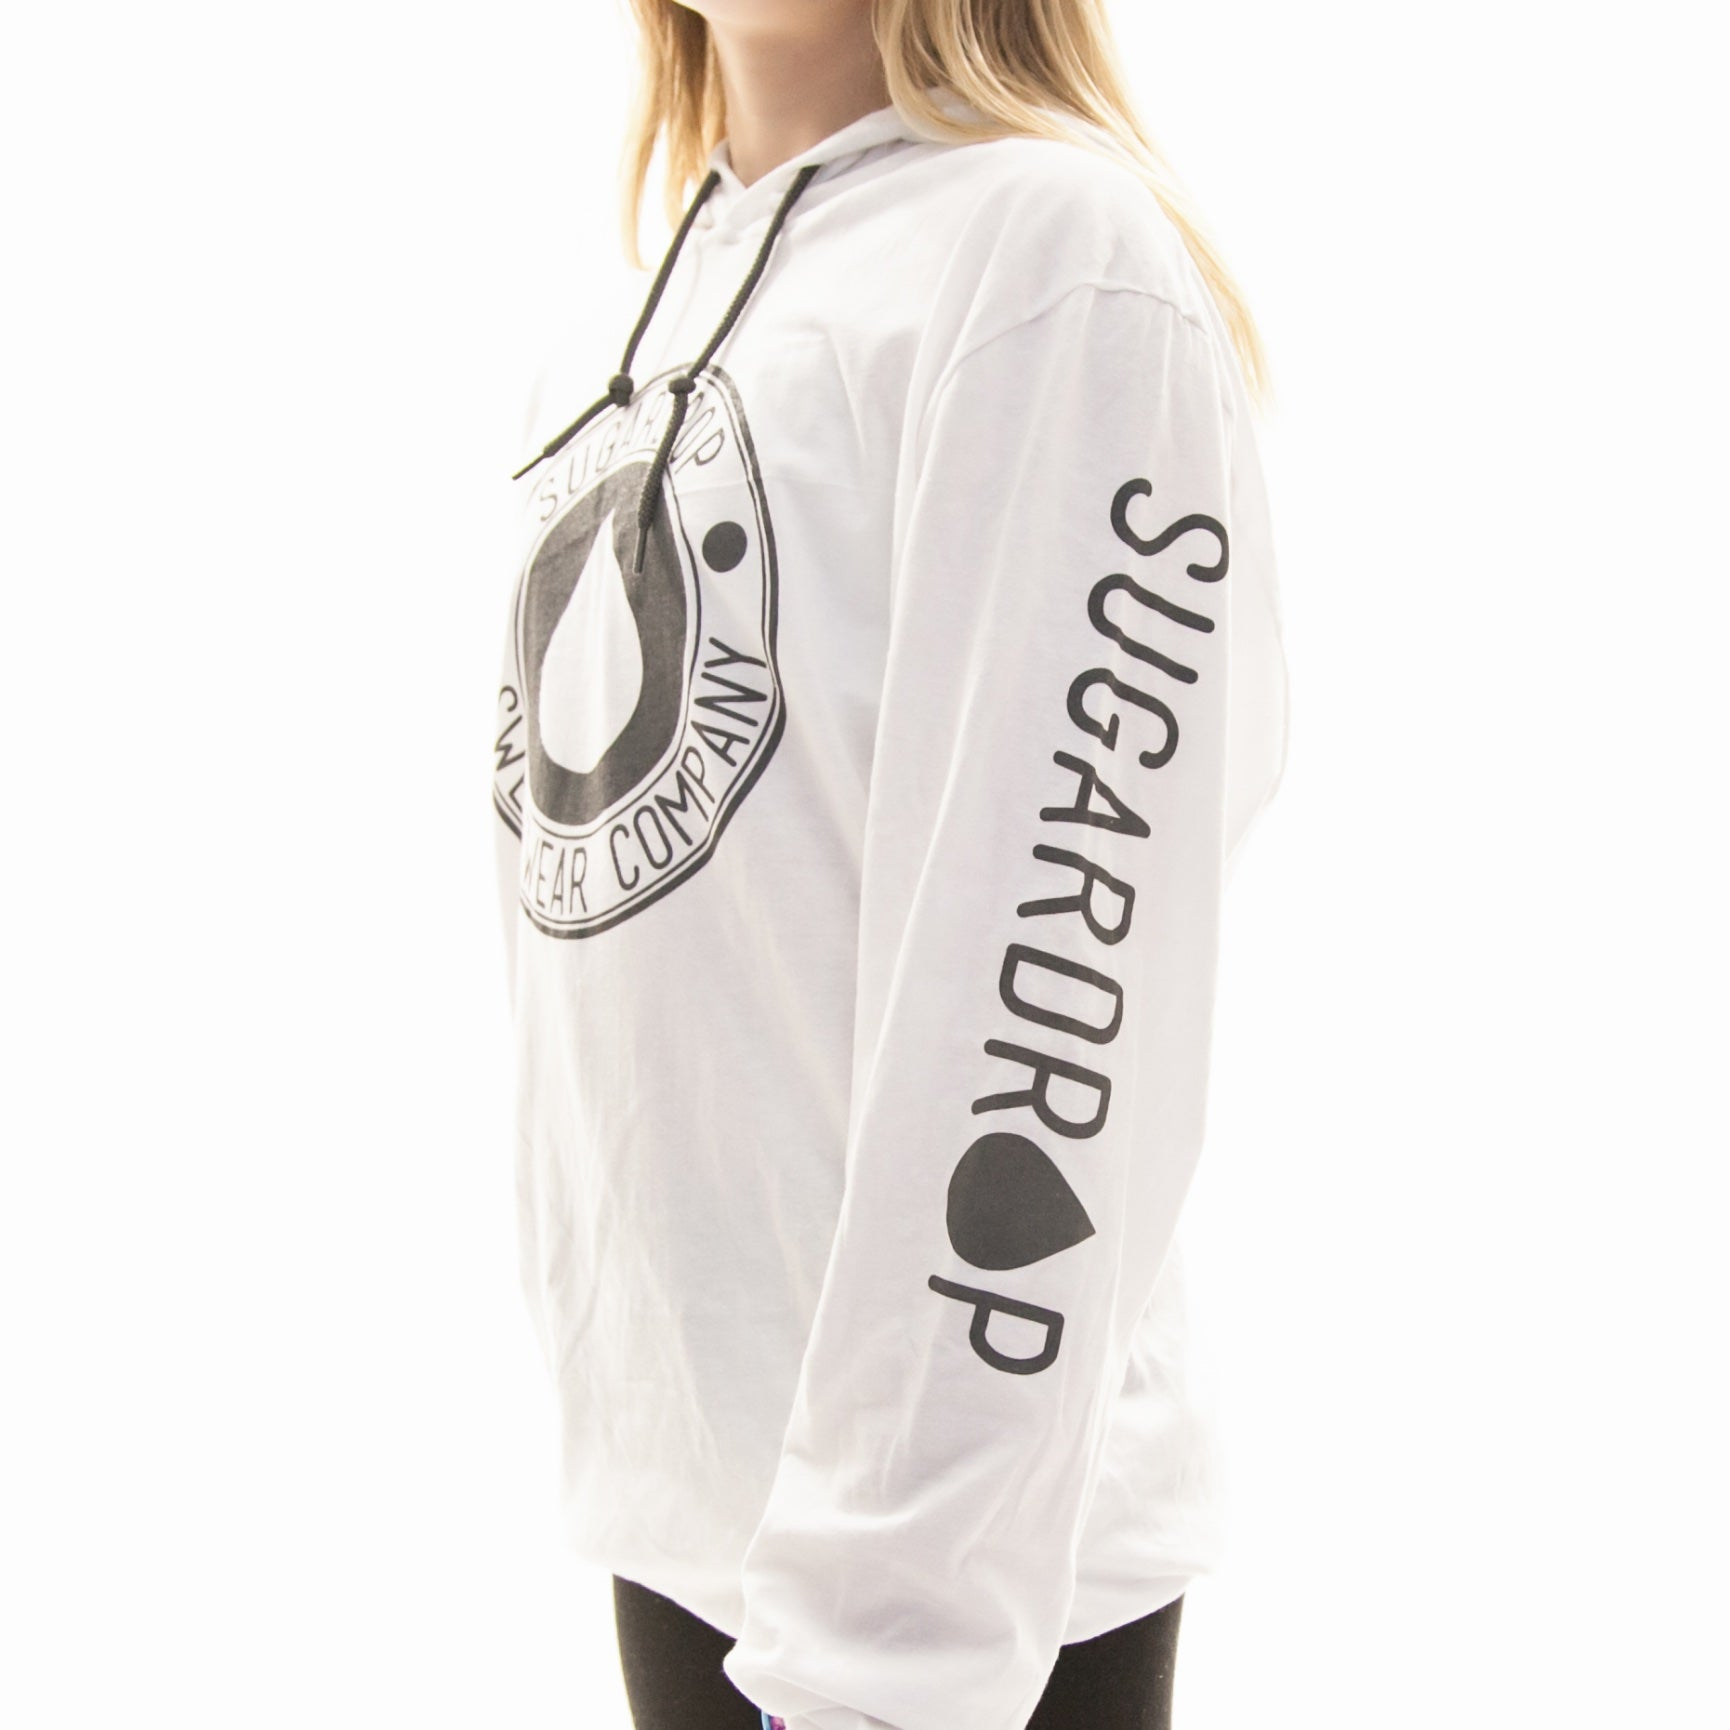 Sugardrop Circle Hooded Tee Adult